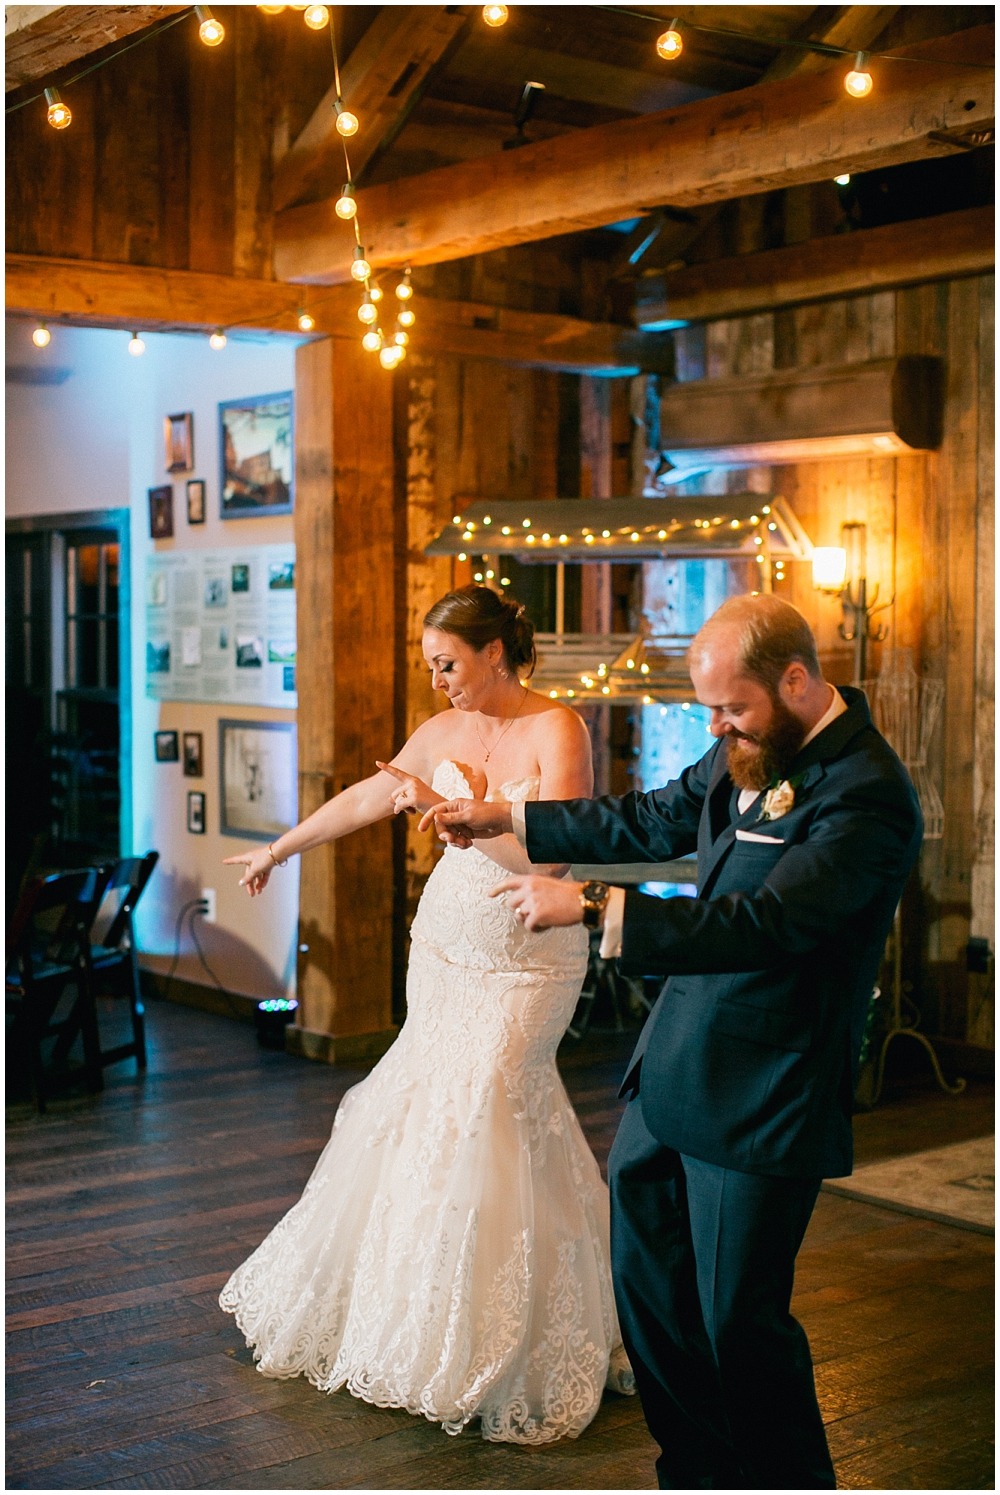 PattengalePhotography_StLouis_Wedding_Photographer_Boho_Hipster_Urban_Style_StCharles_Missouri_BullRunWinery_Charlottesville_Ashley&Sawyer_0140.jpg